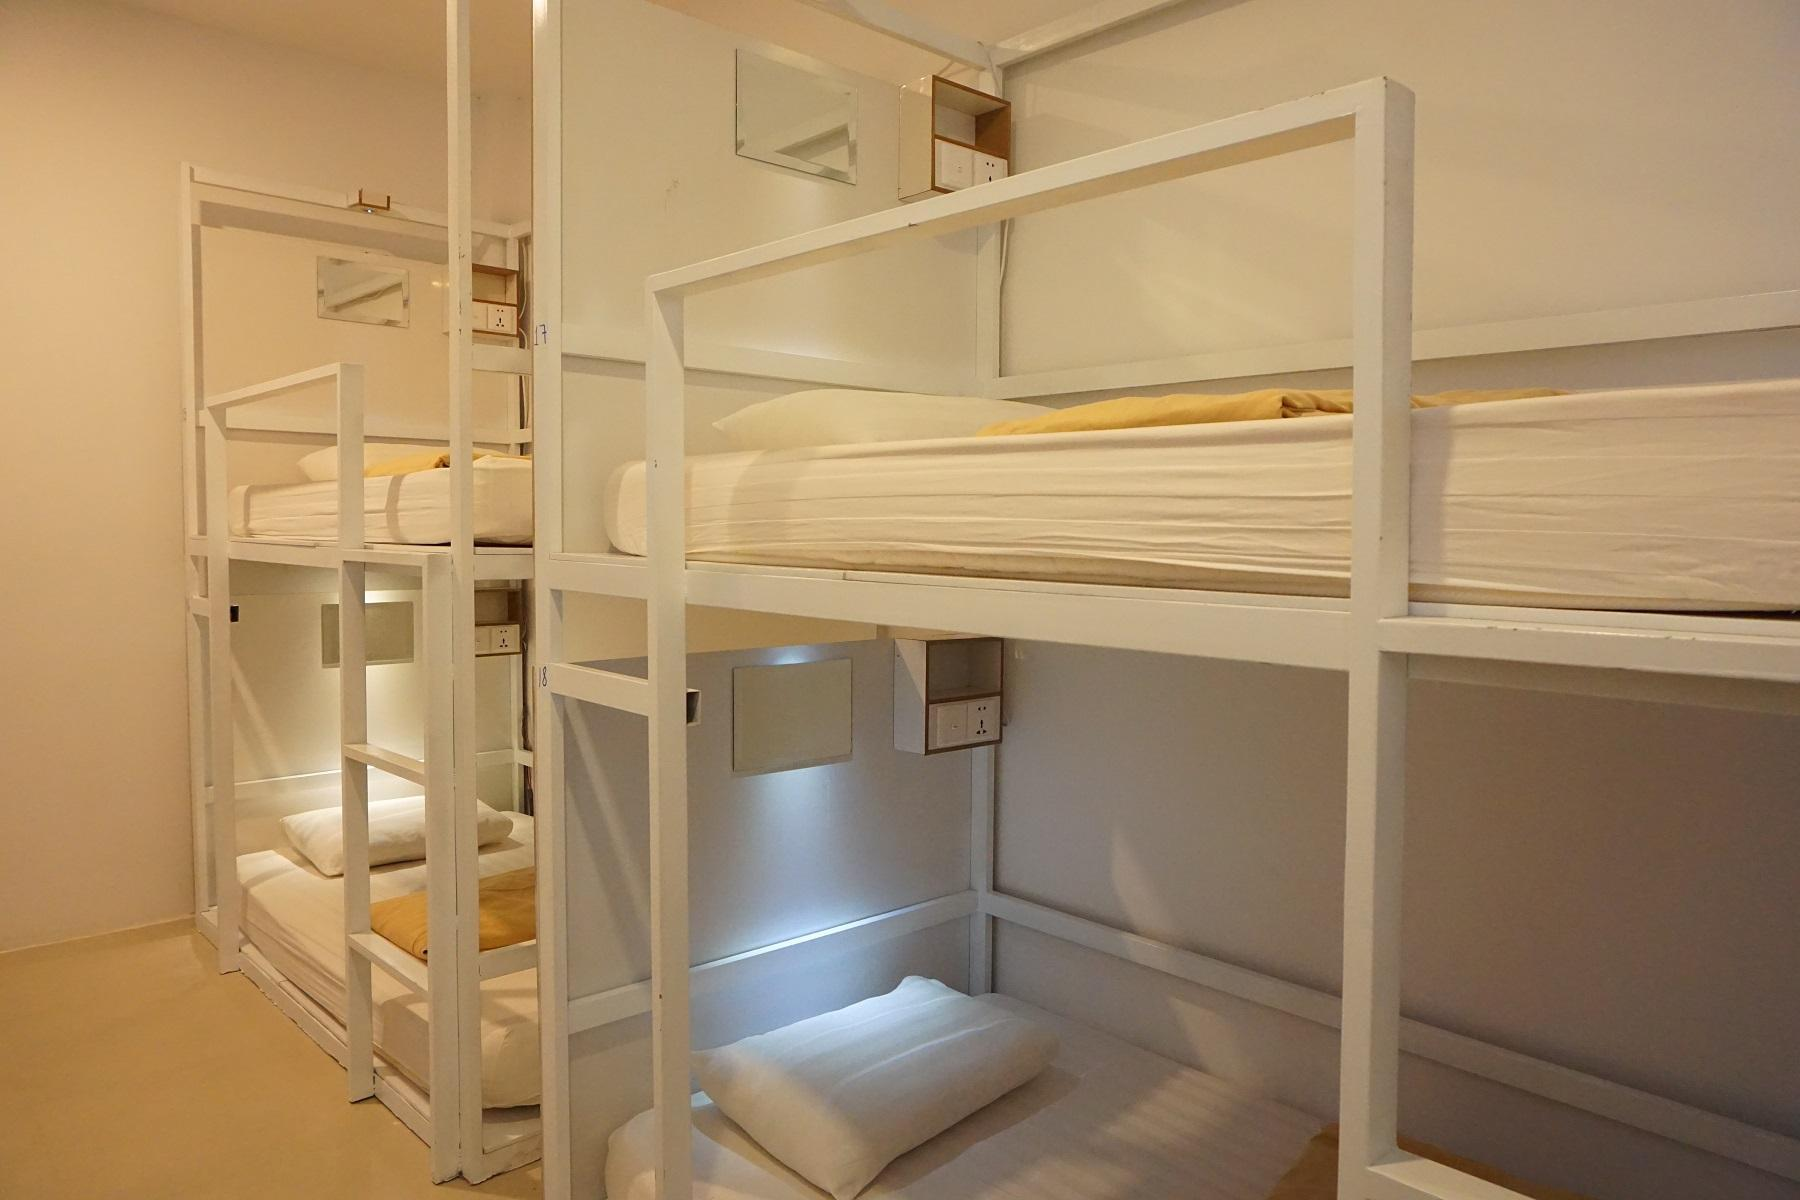 10-Bed Dormitory -- Mixed